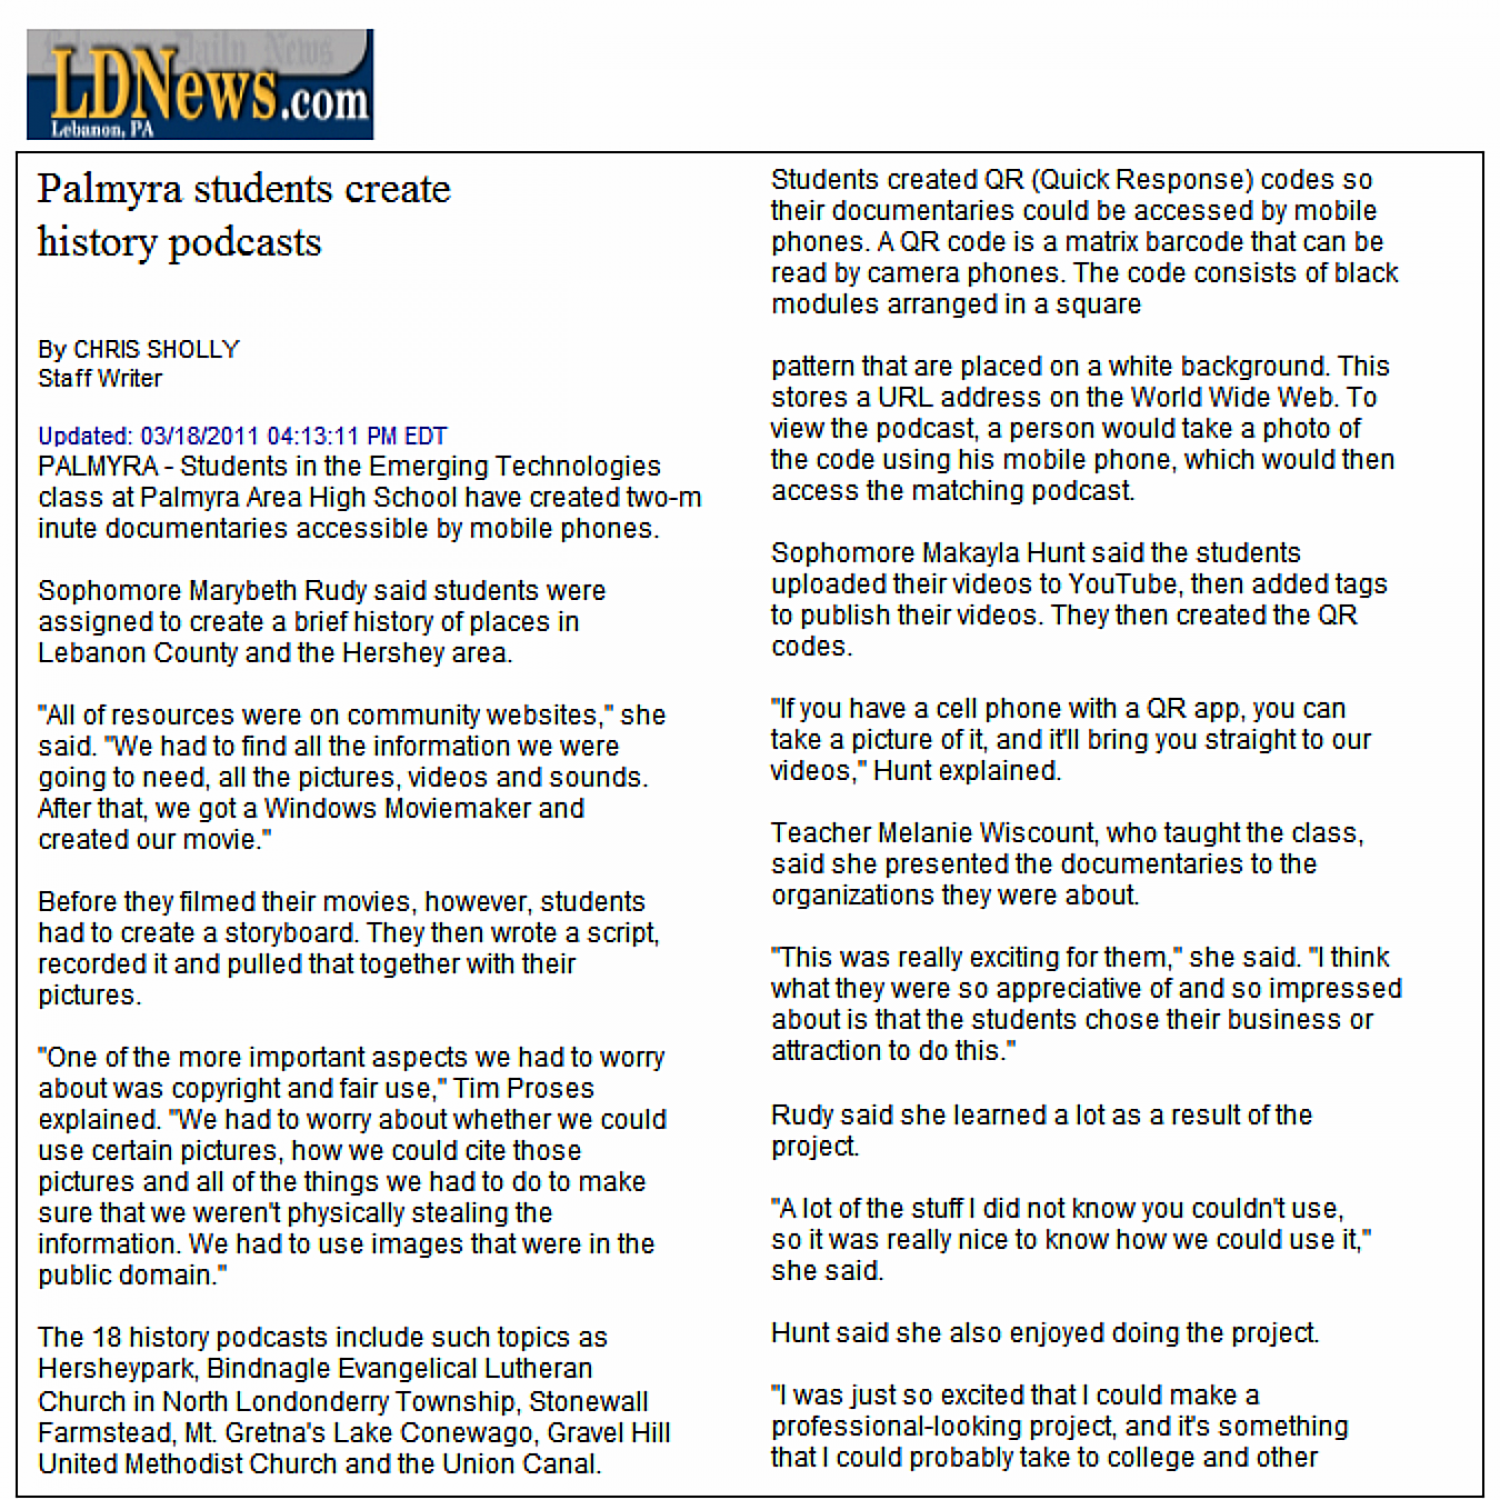 Palmyra Students Create History Podcasts Infographic